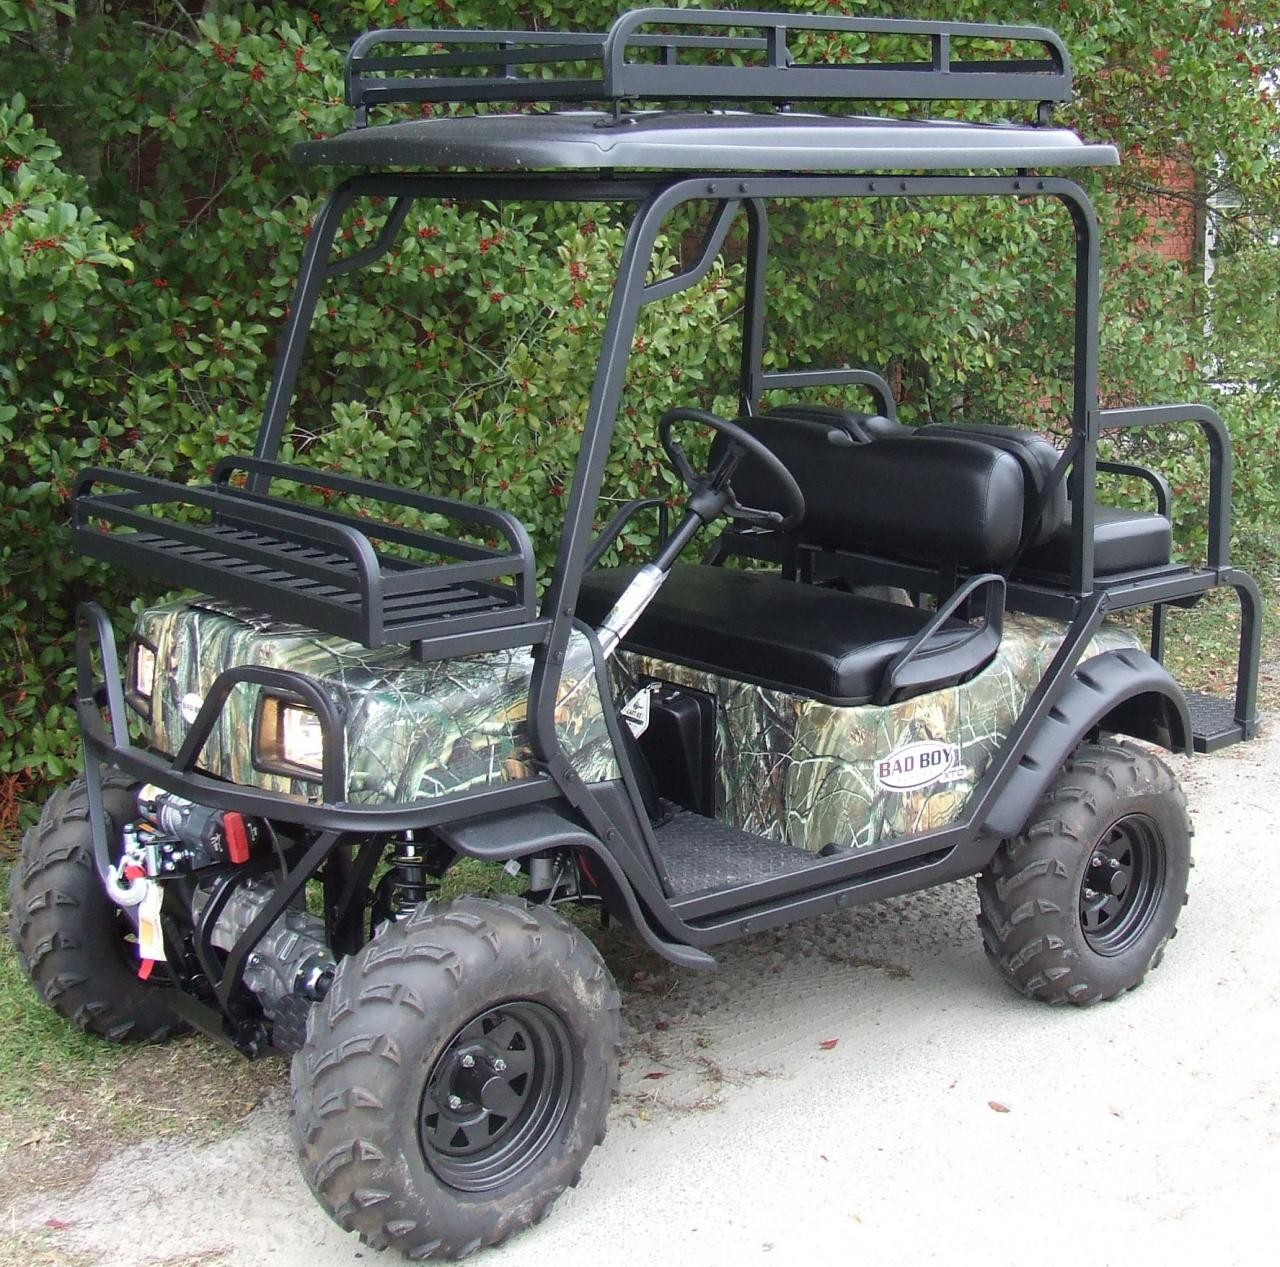 2013 Bad Boy Buggy Ecm New